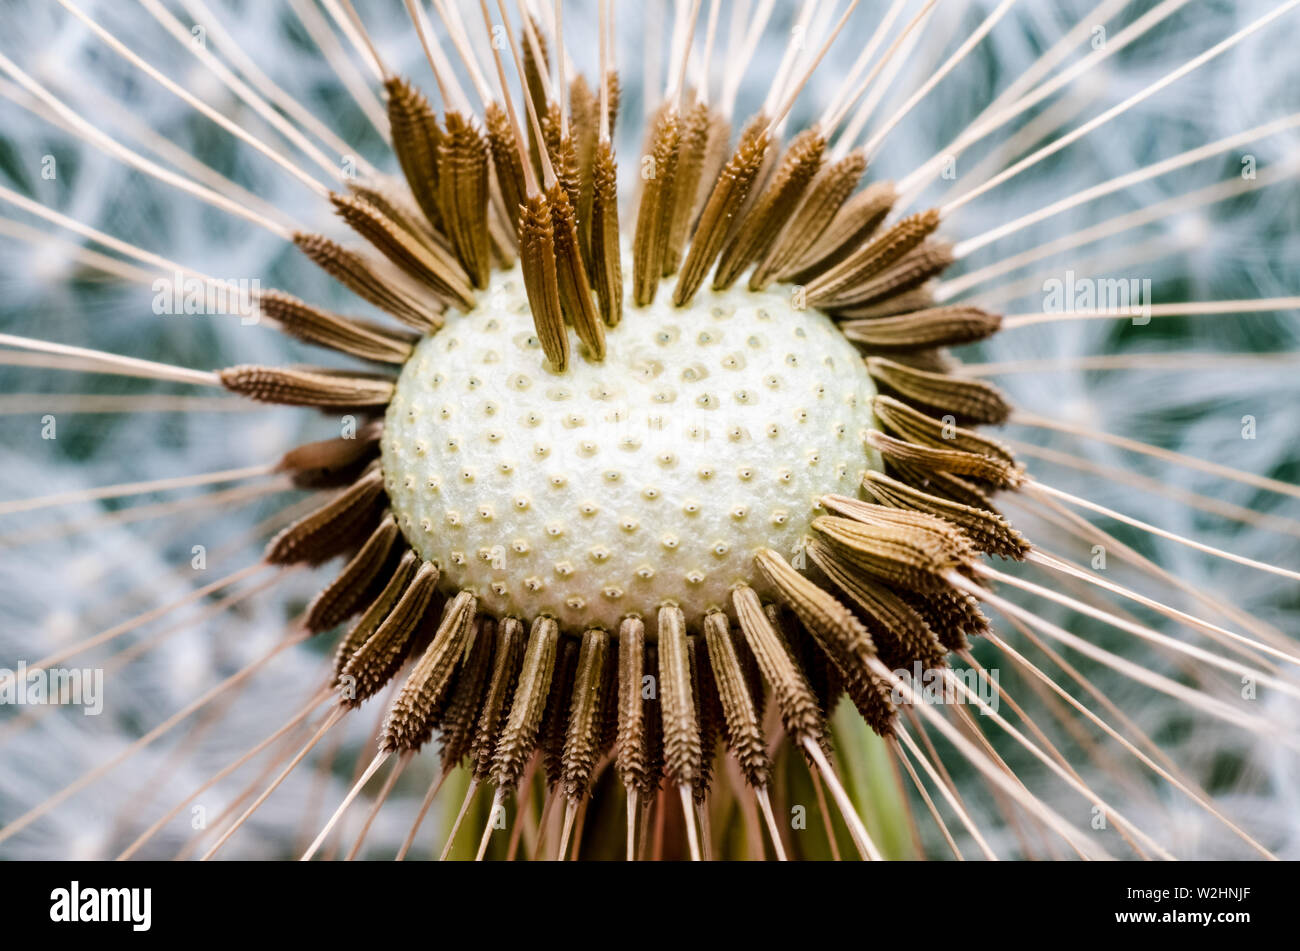 Taraxacum, Asteraceae, extreme macro close up of dandelion flower with focus on seeds in center Stock Photo